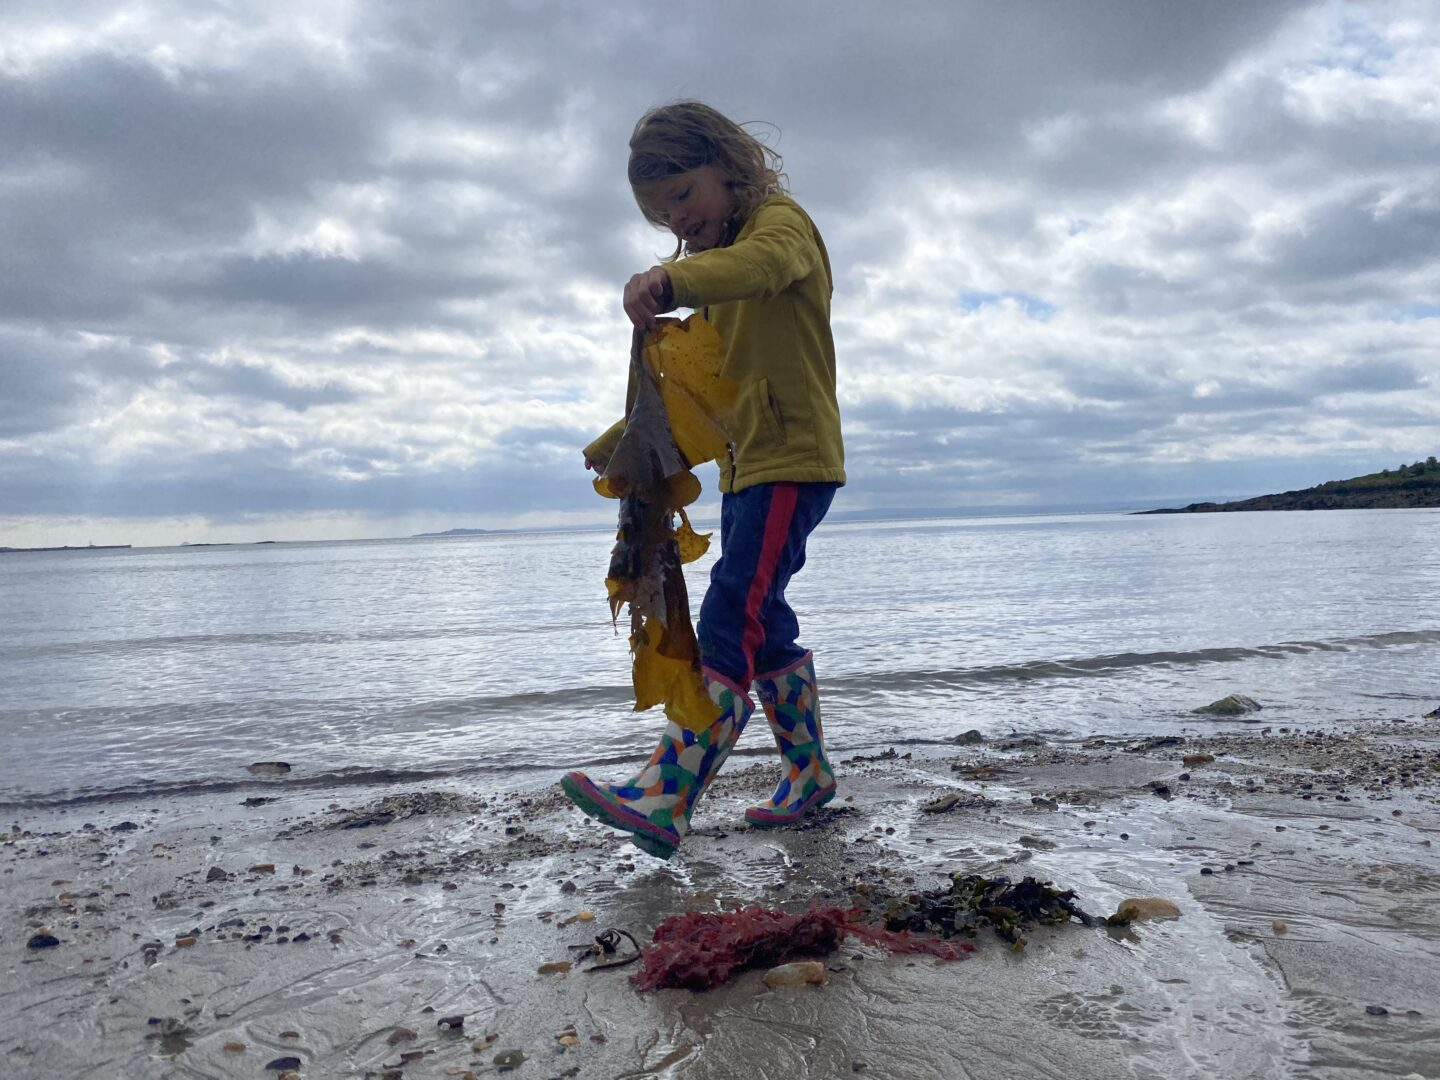 a child comparing different seaweeds on the beach